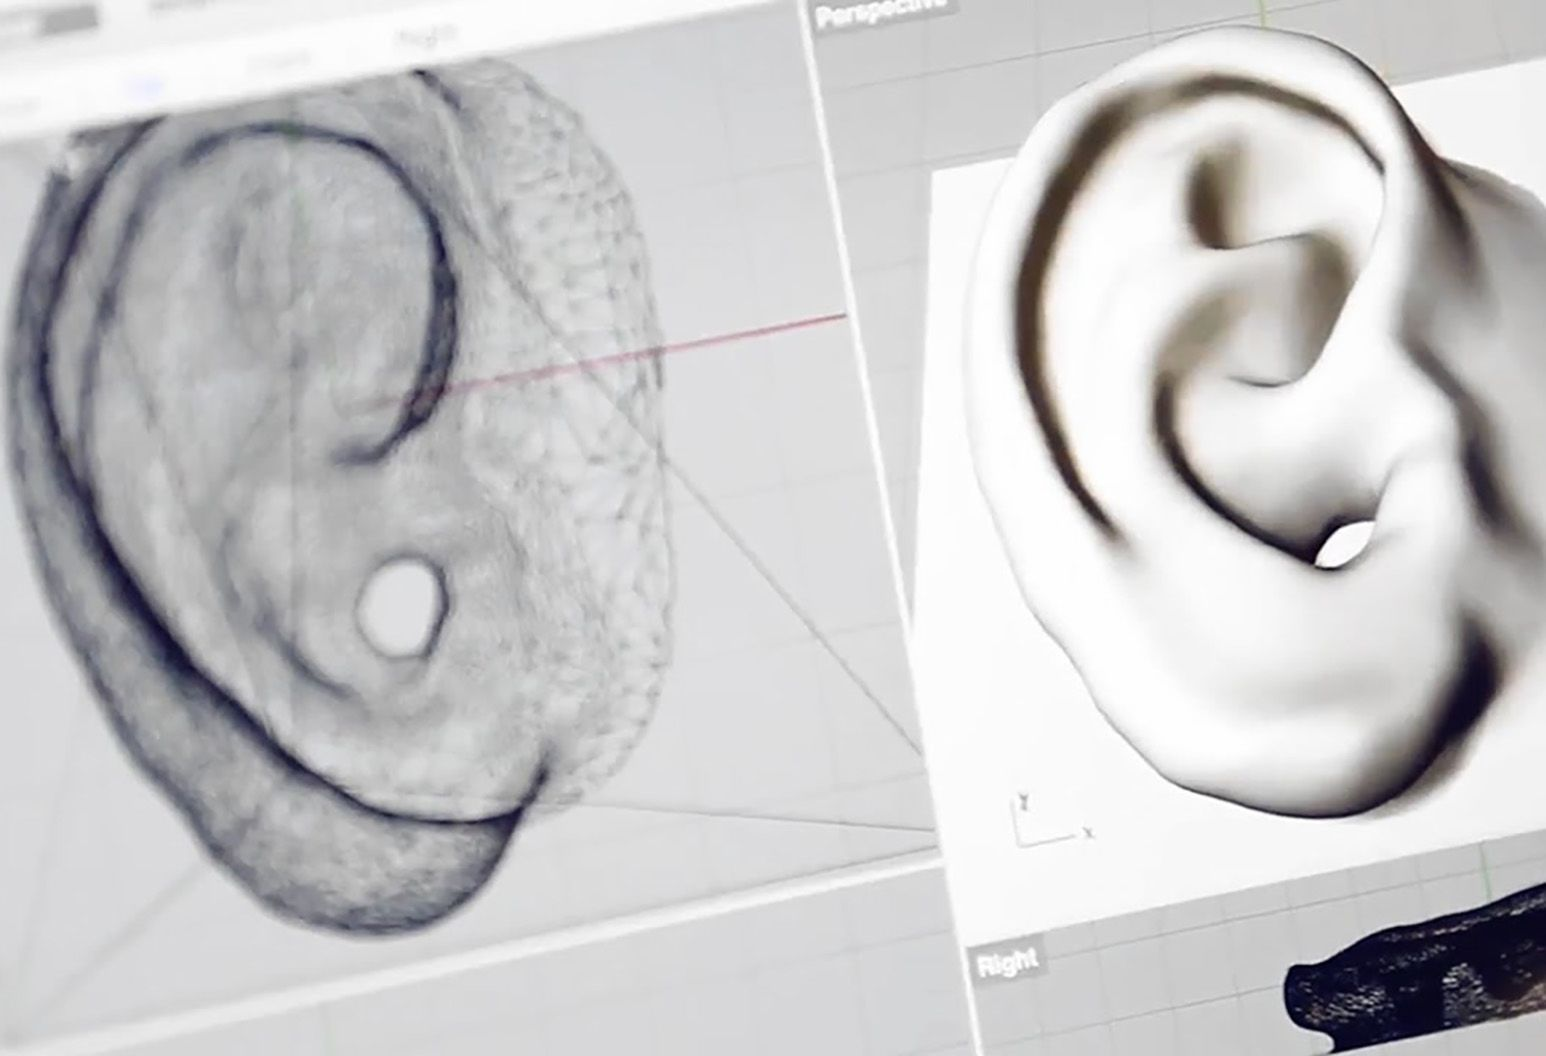 A drawing and a white model of a human ear are shown on white background